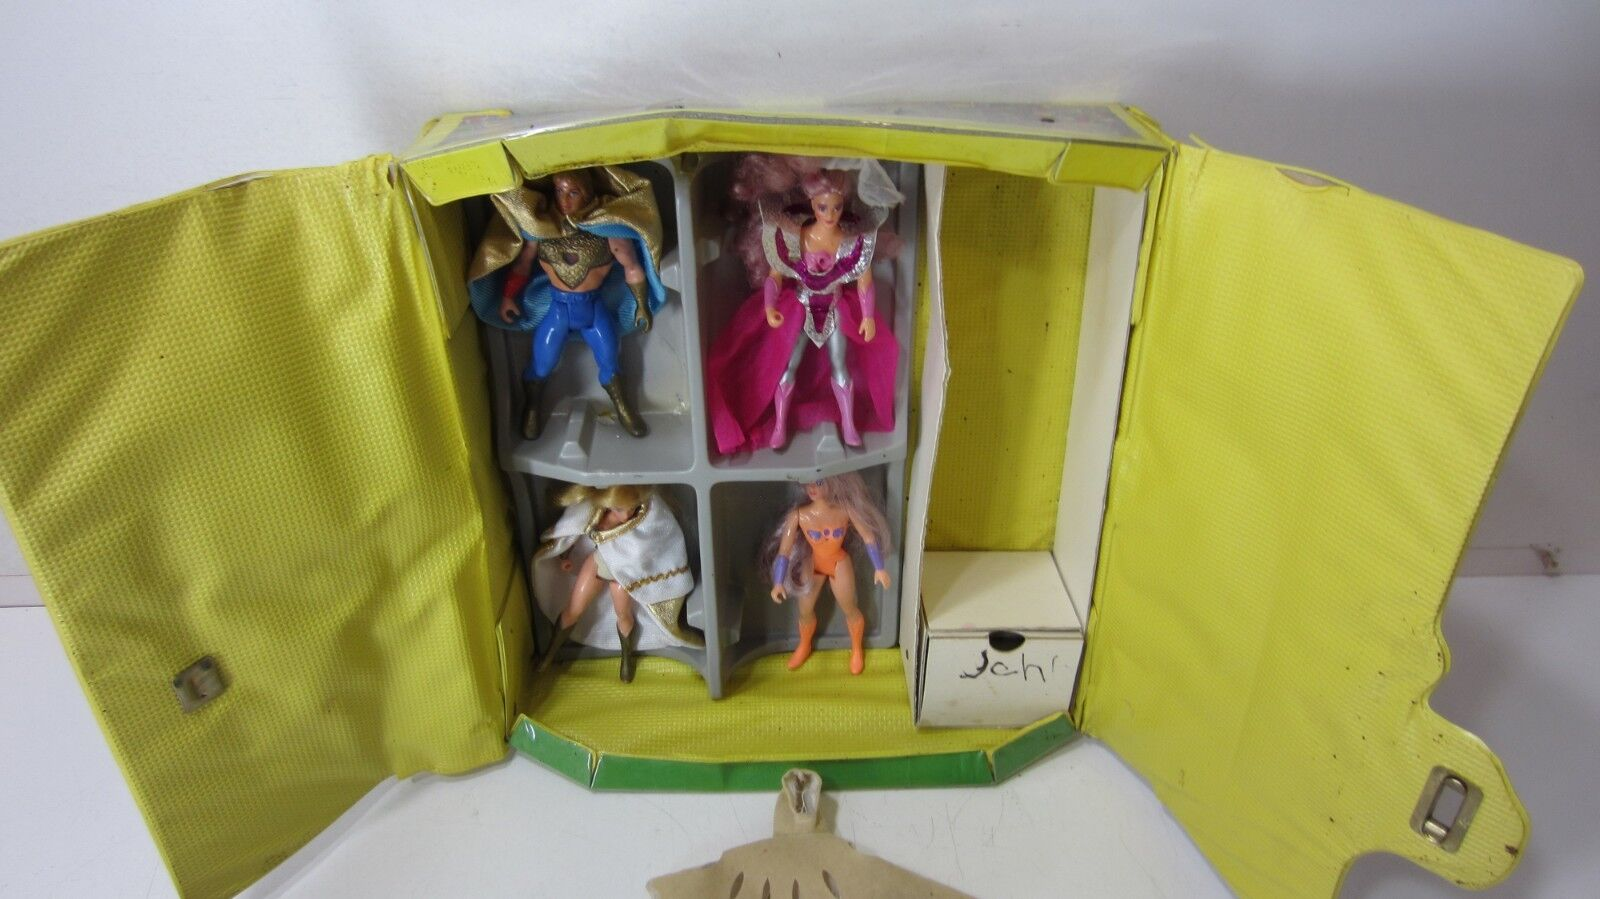 Lot of 4 SHE RA Vintage Dolls + Collector's Case